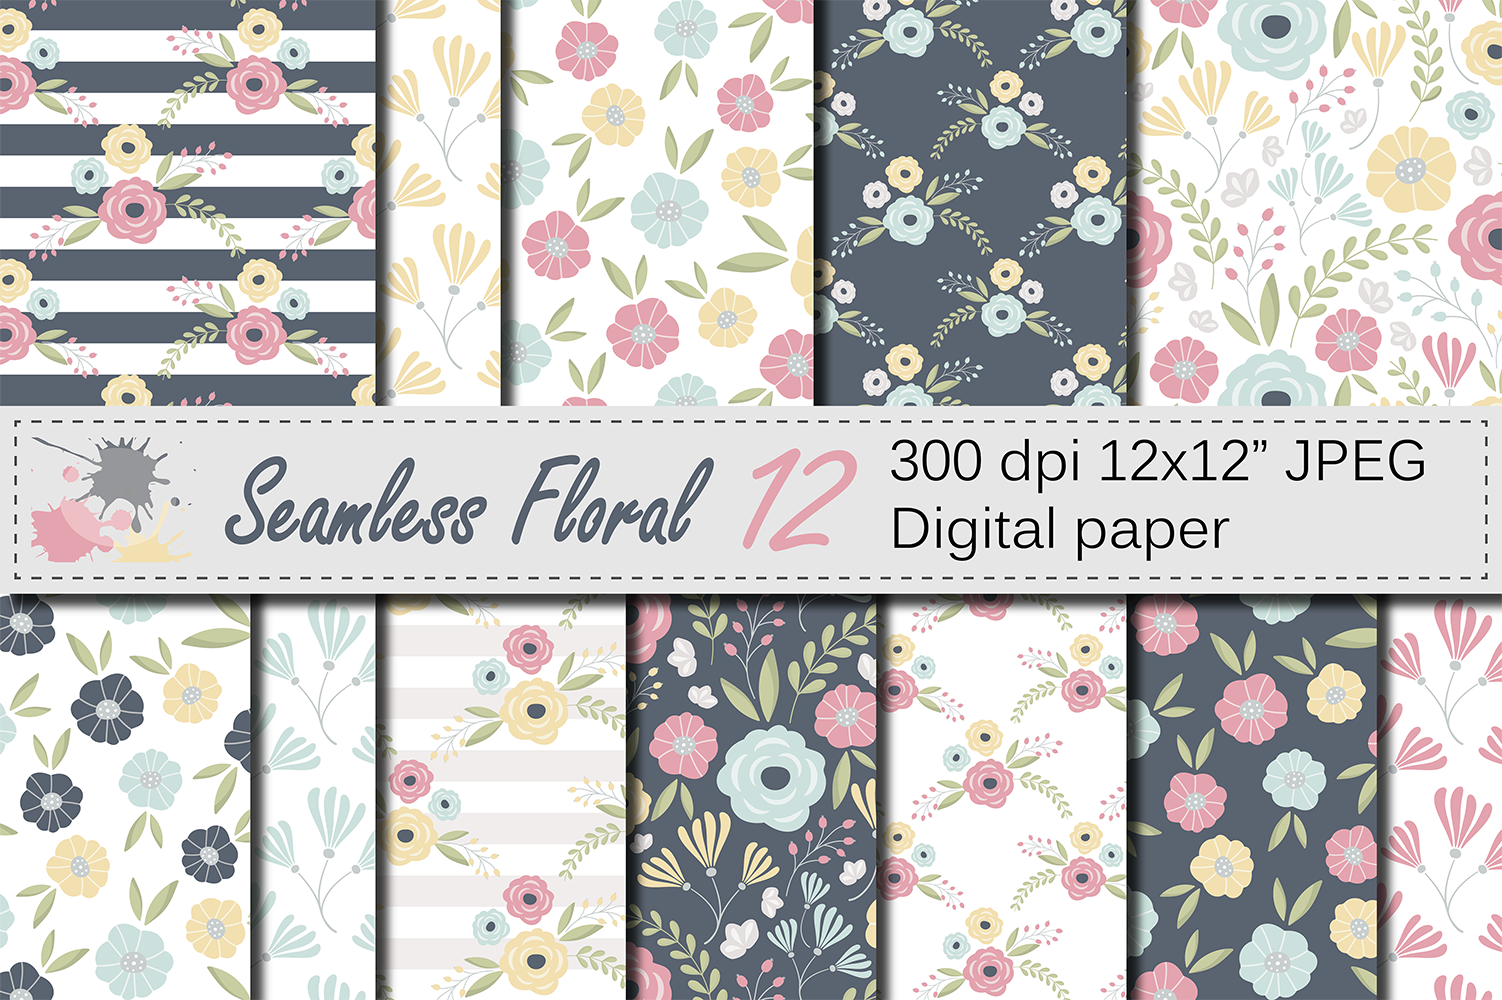 Seamless Floral Pattern Graphic Patterns By VR Digital Design